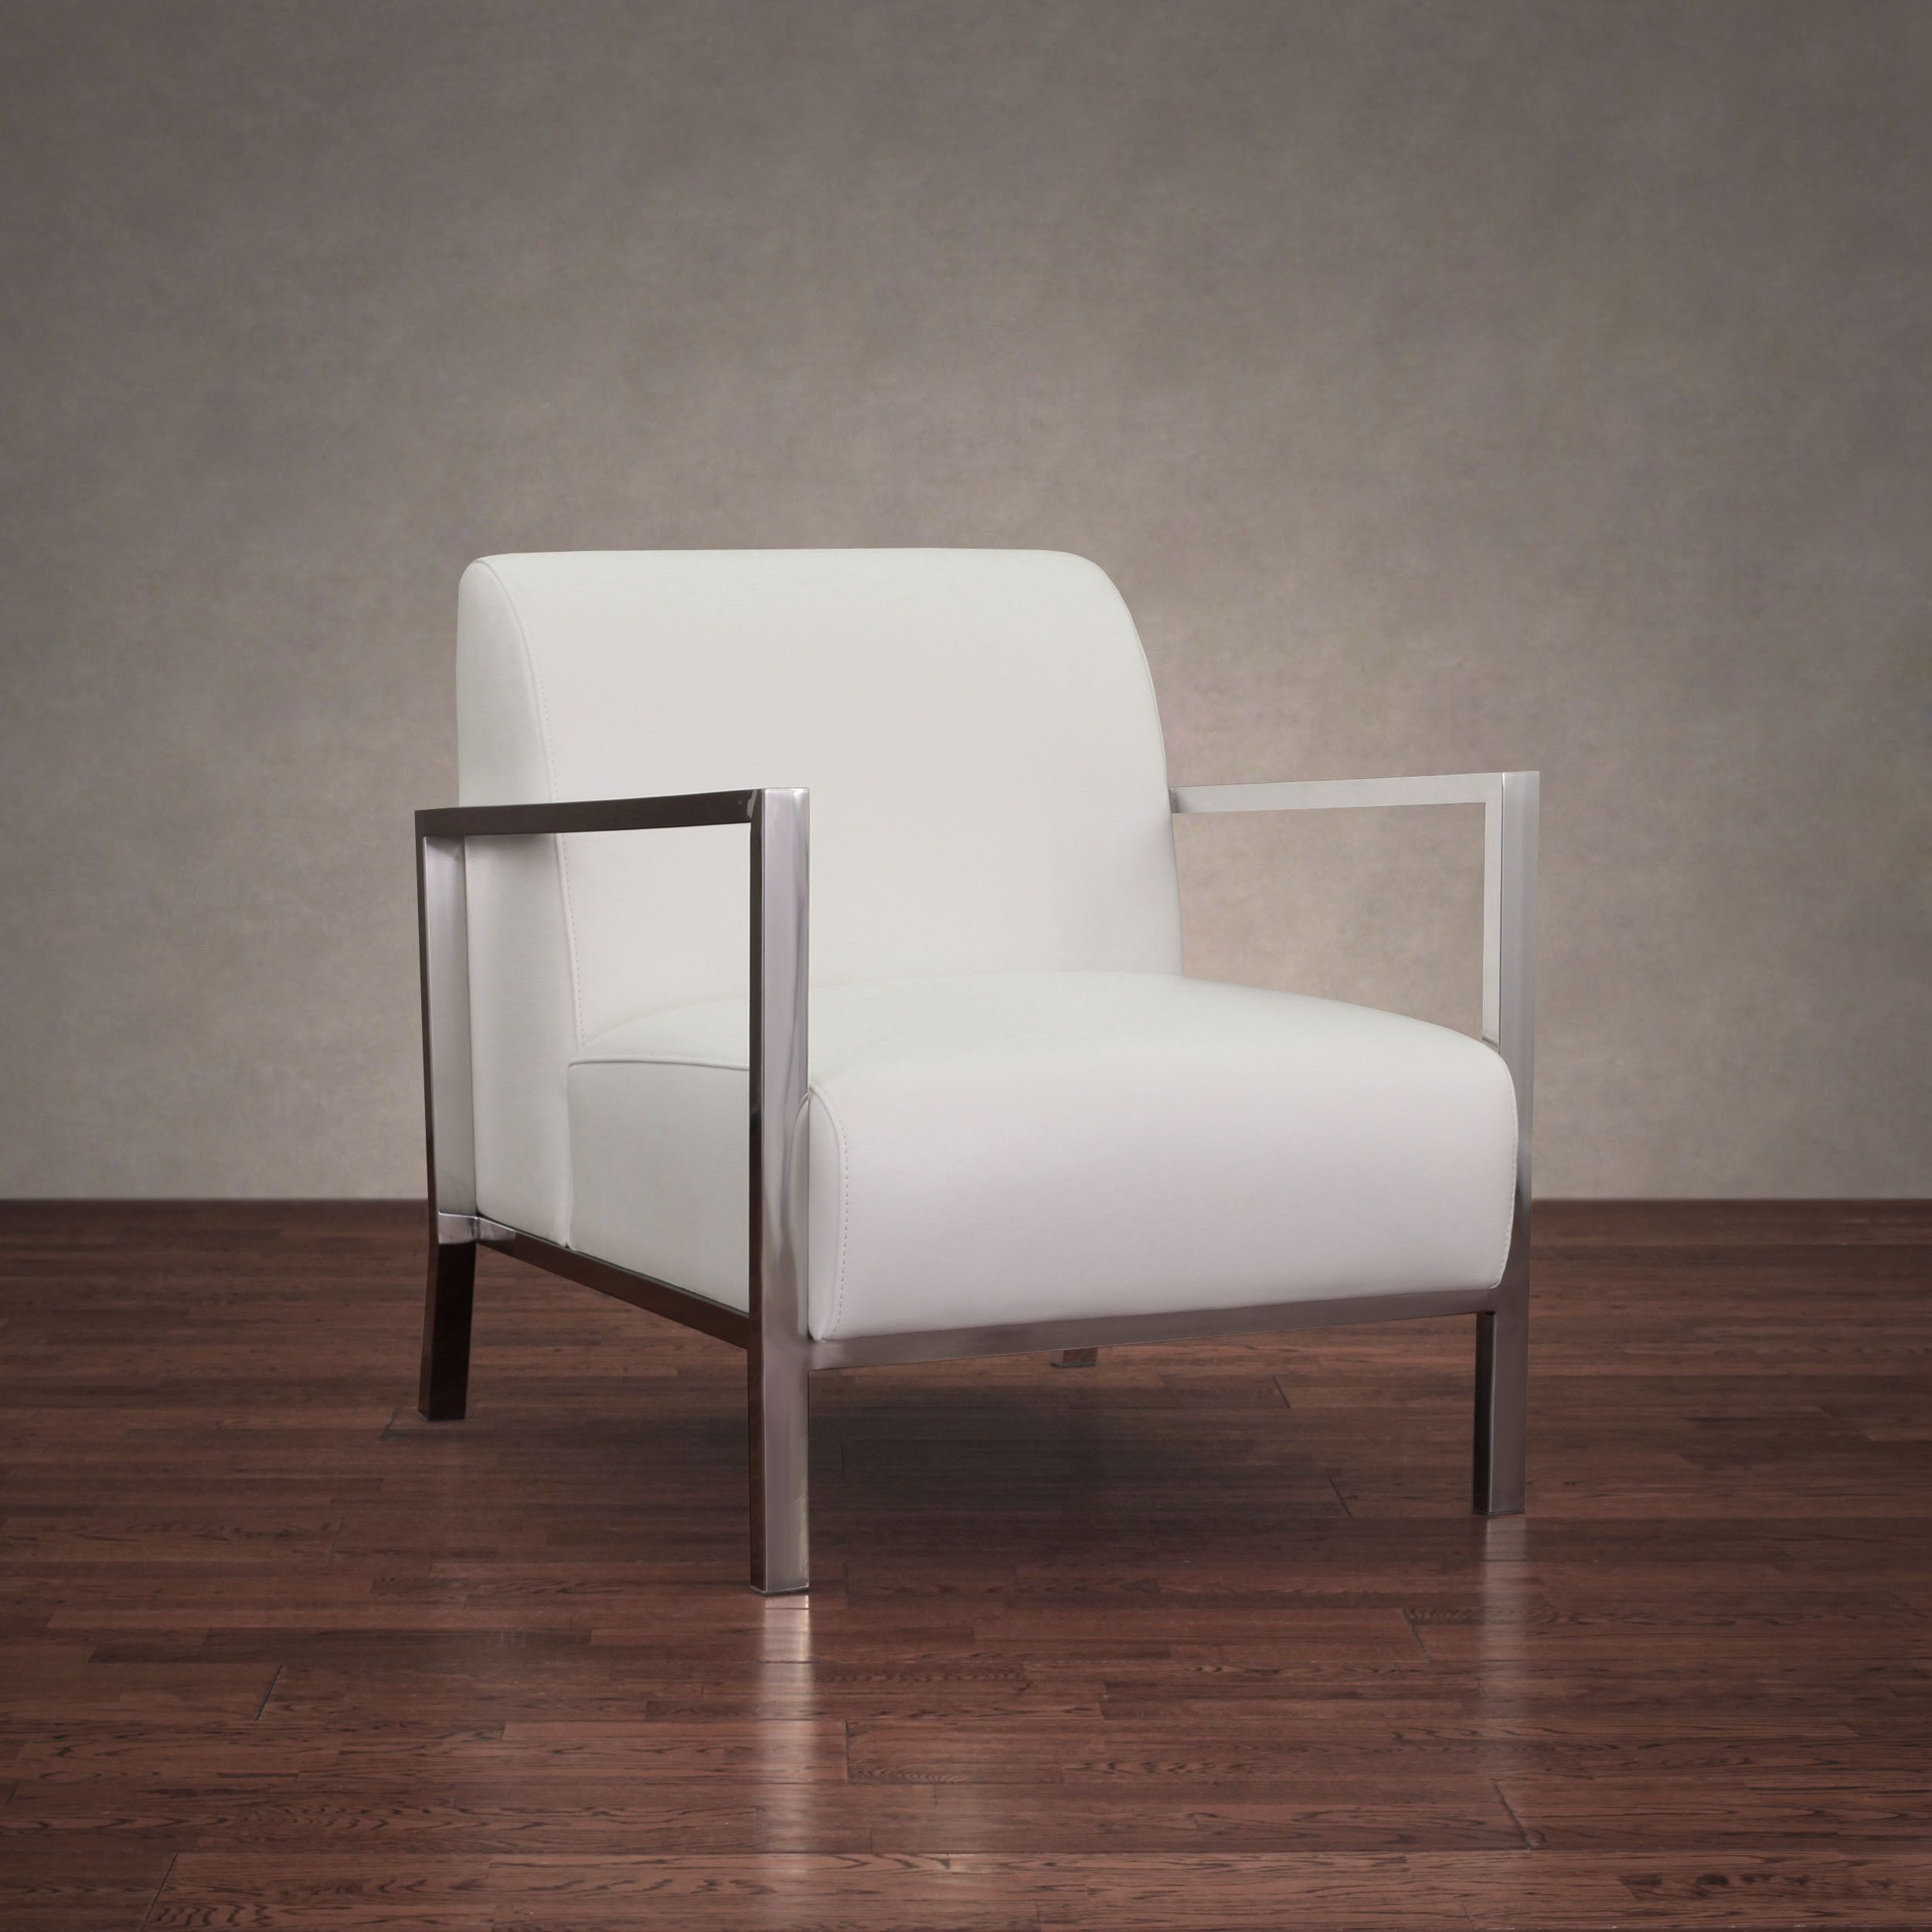 Marvelous Modena Modern White Leather Accent Chair Overstock Com Machost Co Dining Chair Design Ideas Machostcouk